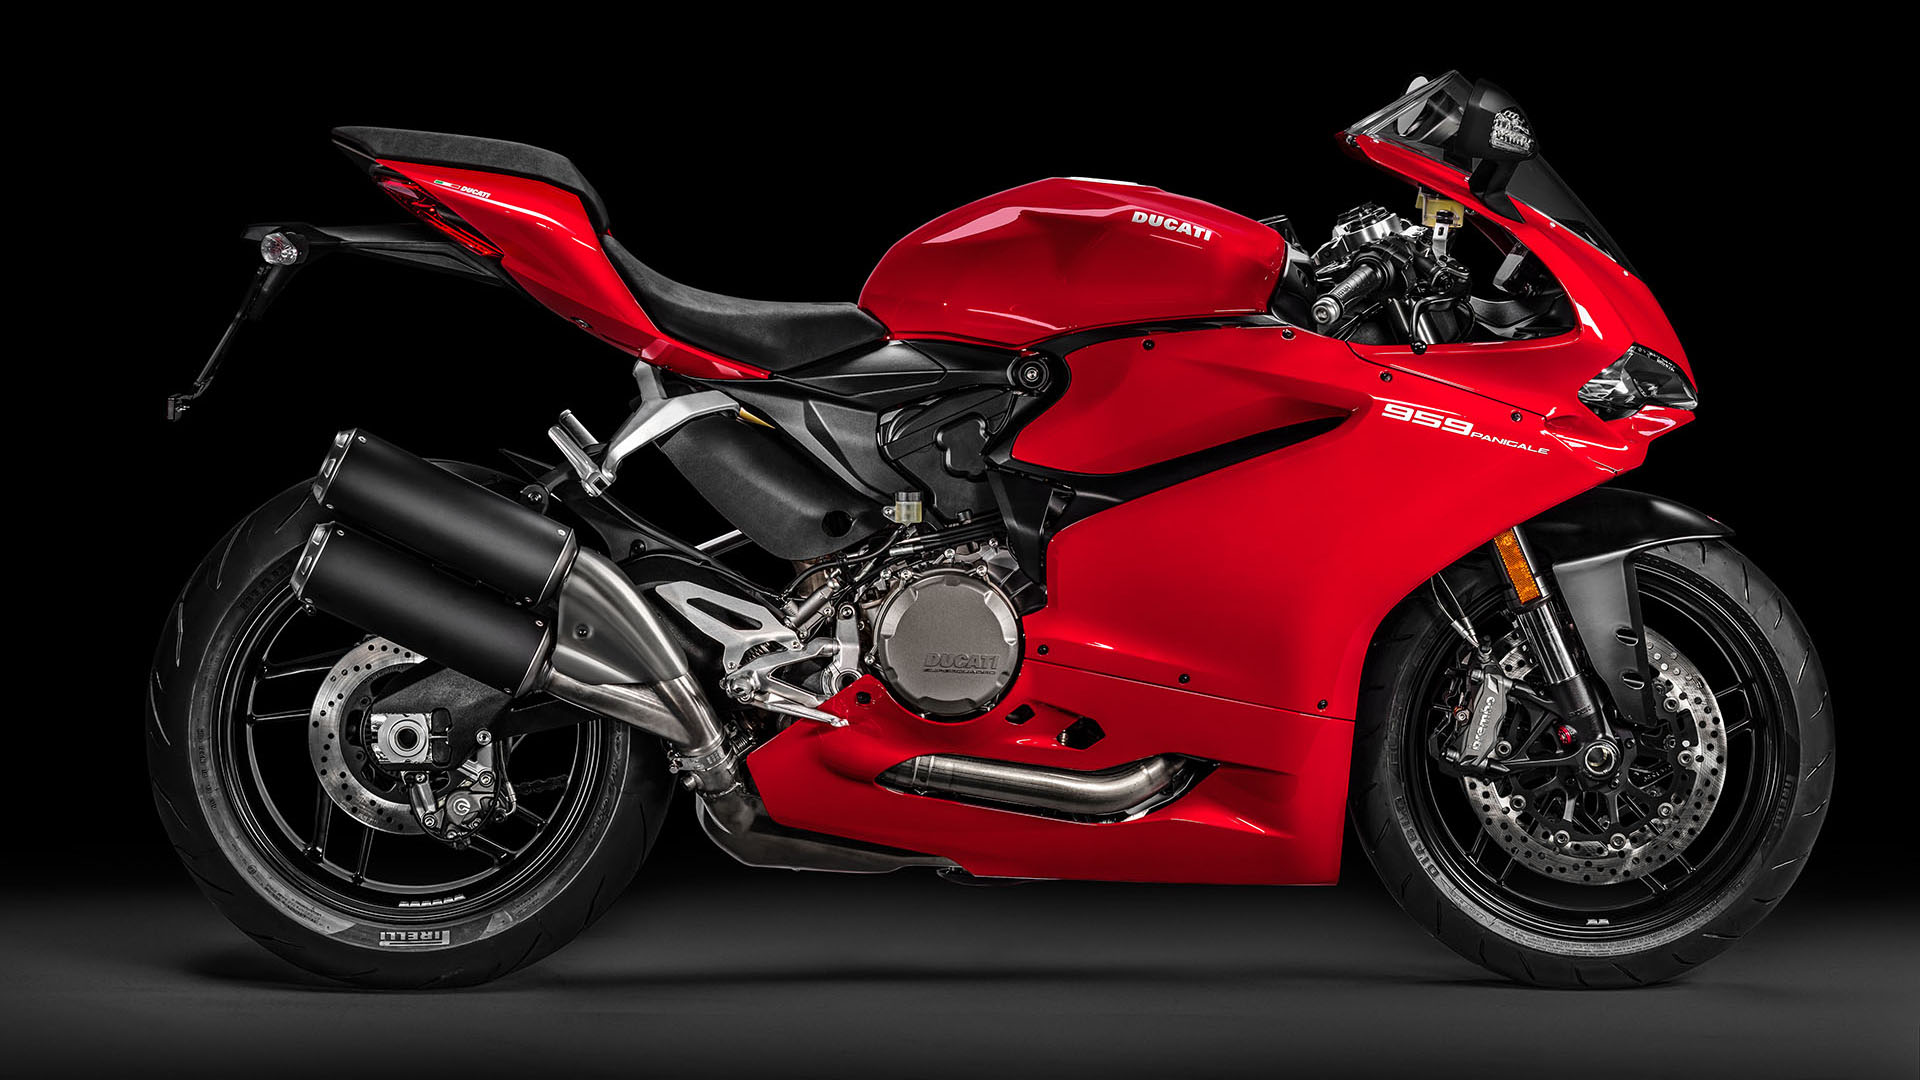 ducati store news ducati panigale 959 full details. Black Bedroom Furniture Sets. Home Design Ideas